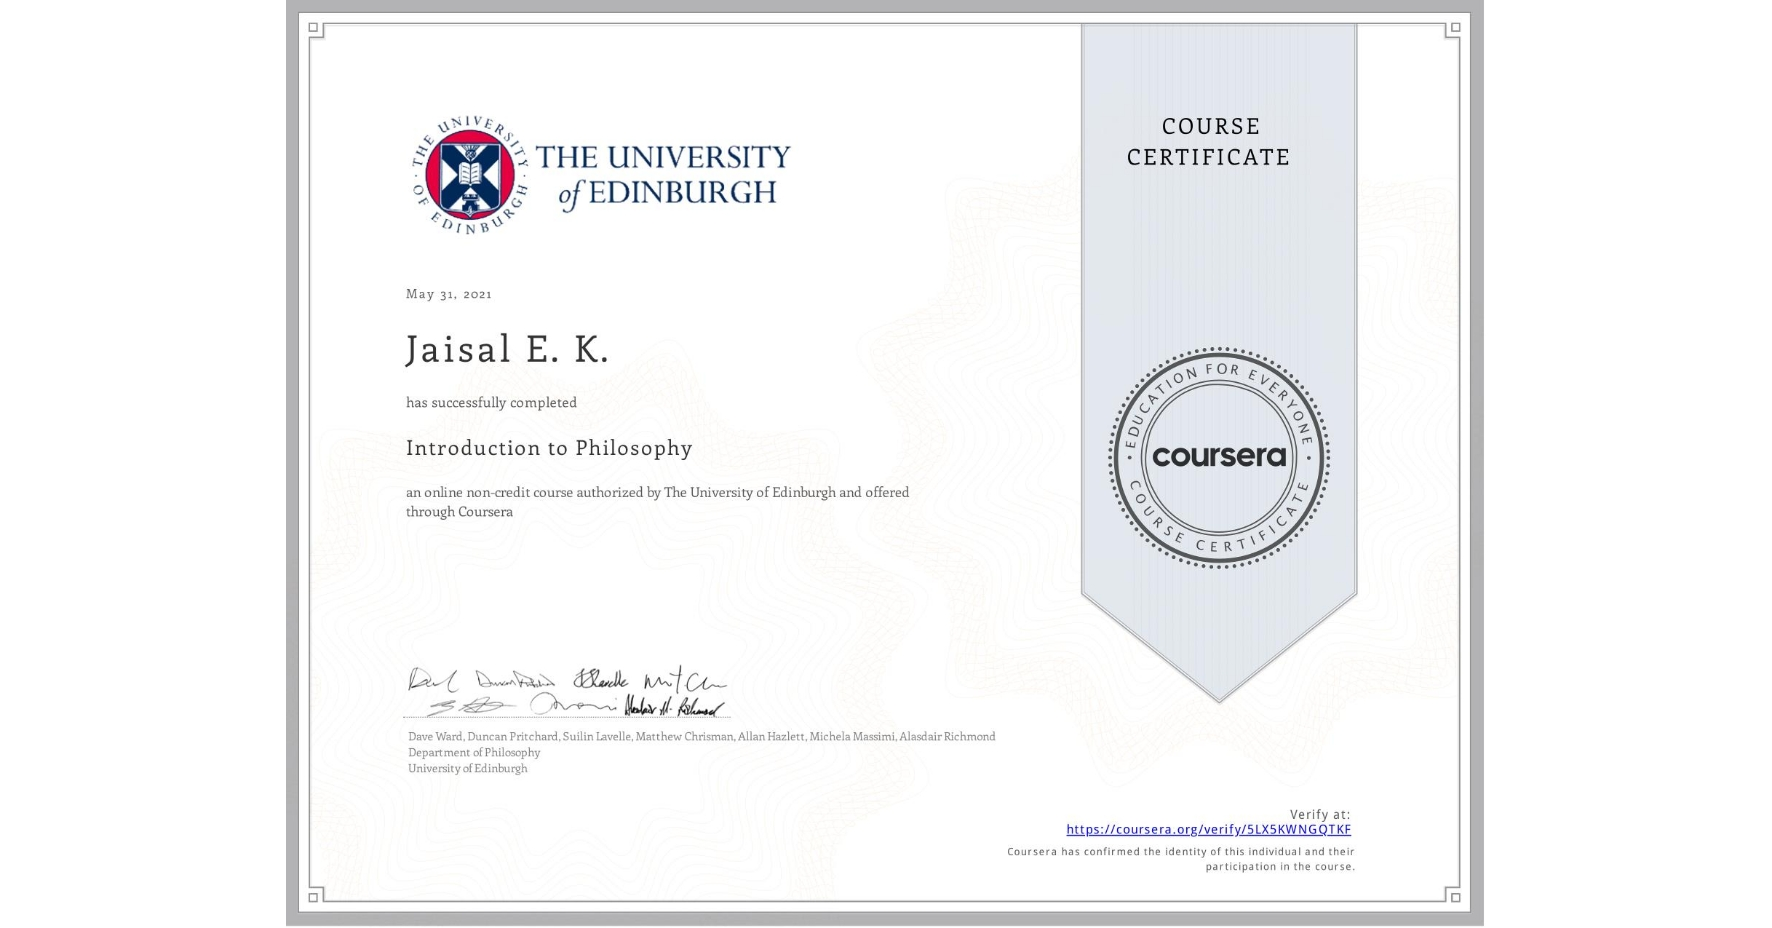 View certificate for Jaisal E. K., Introduction to Philosophy, an online non-credit course authorized by The University of Edinburgh and offered through Coursera